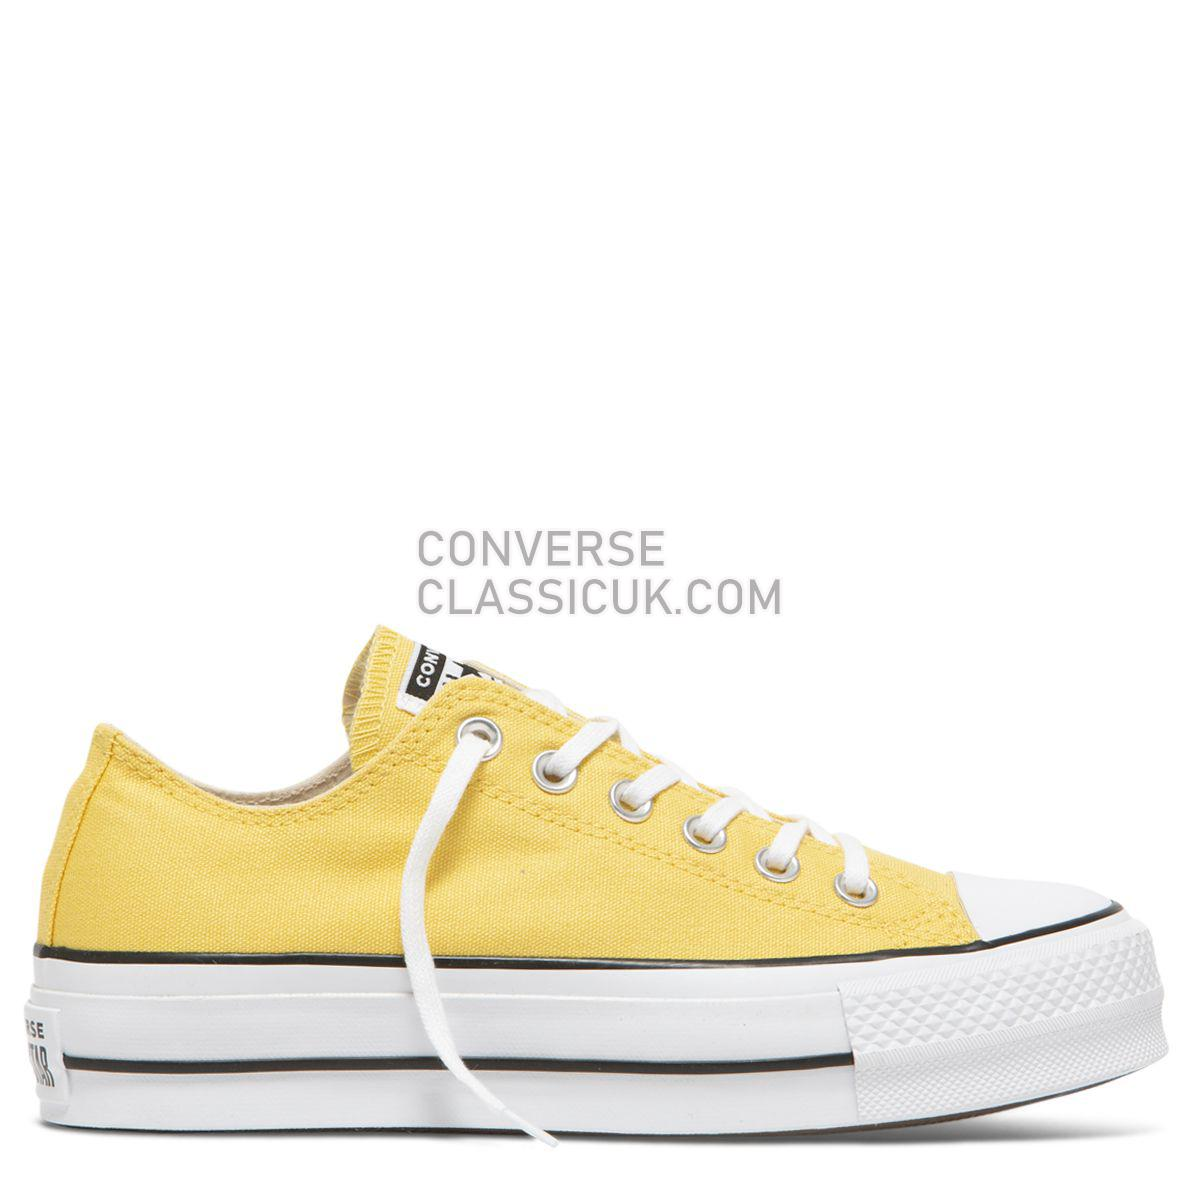 Converse Chuck Taylor All Star Seasonal Lift Low Top Butter Yellow Womens 564385 Butter Yellow/Black/White Shoes